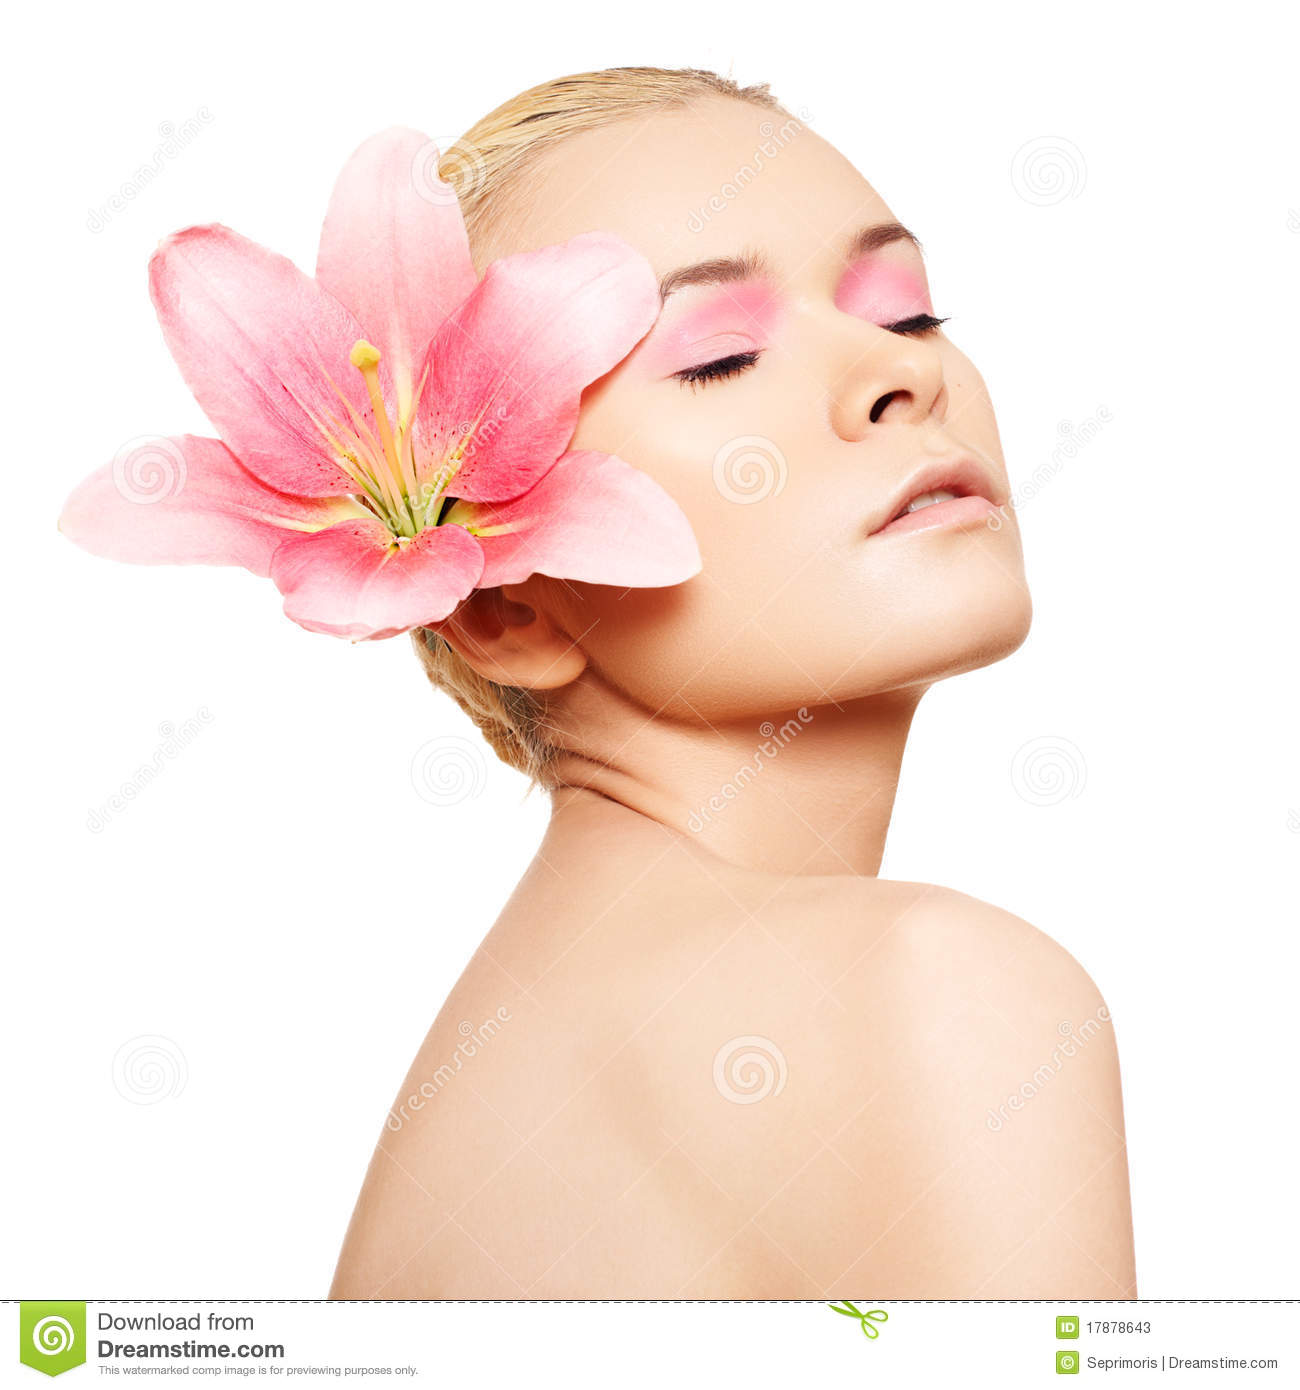 Spa wellness skin care beauty with pink make up stock for A skin care salon